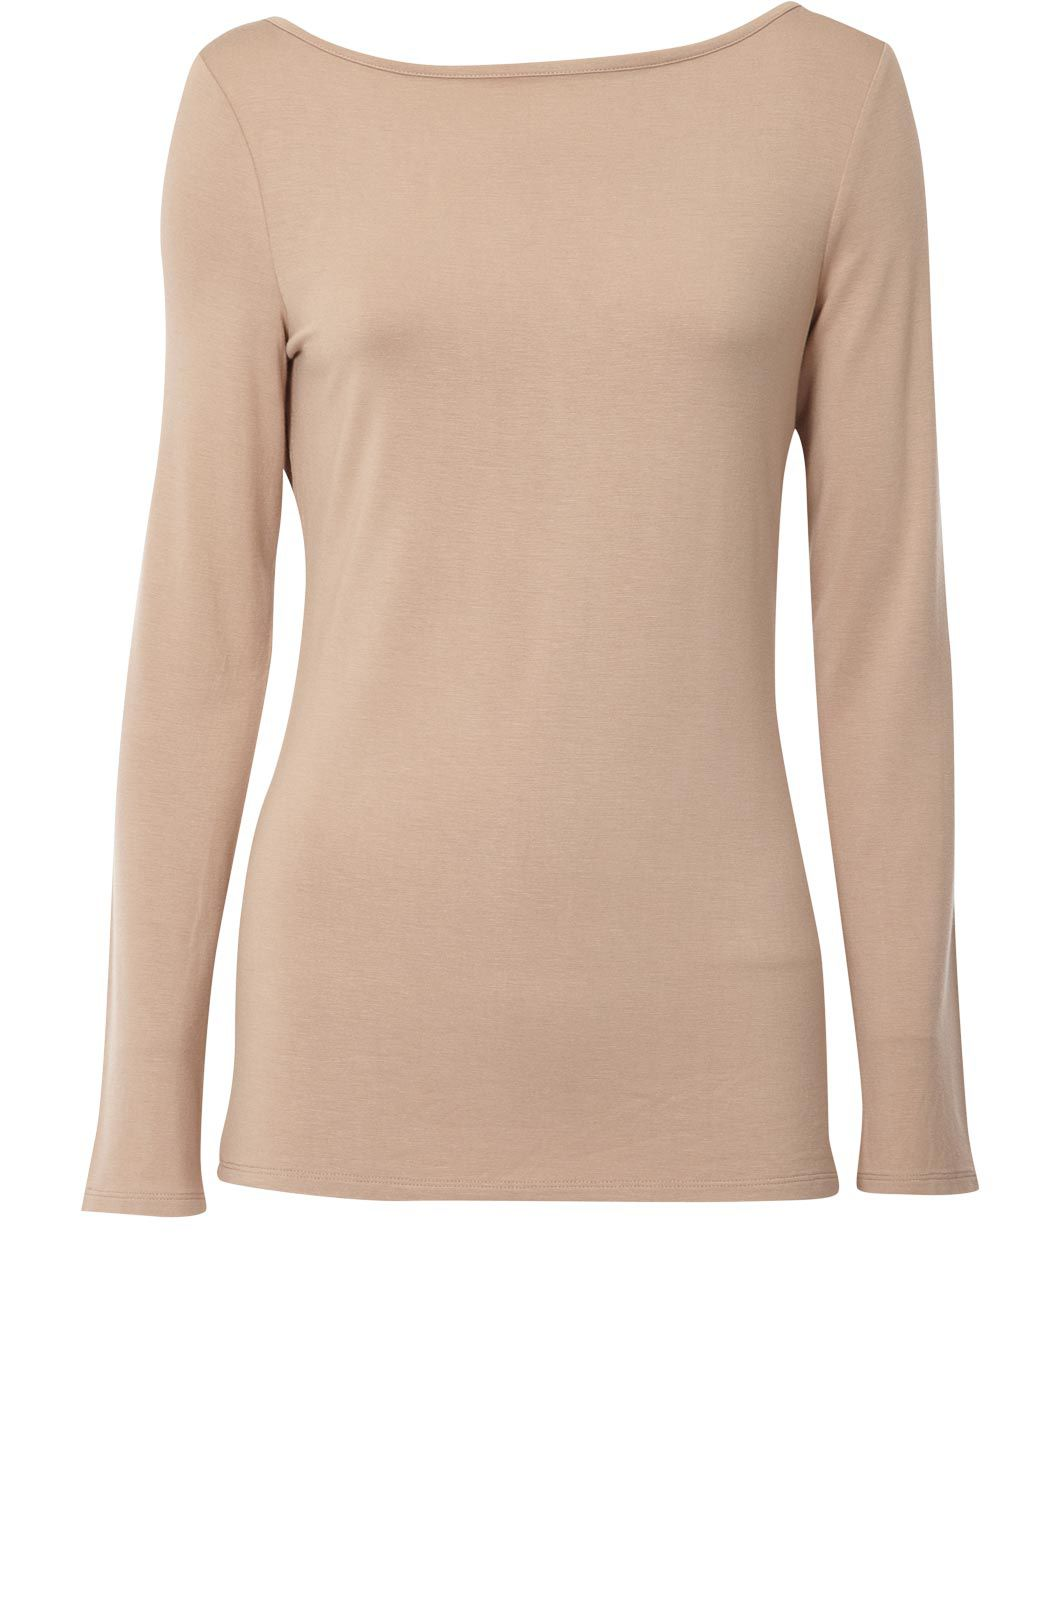 Oasis Boatneck long sleeve tee Natural product image